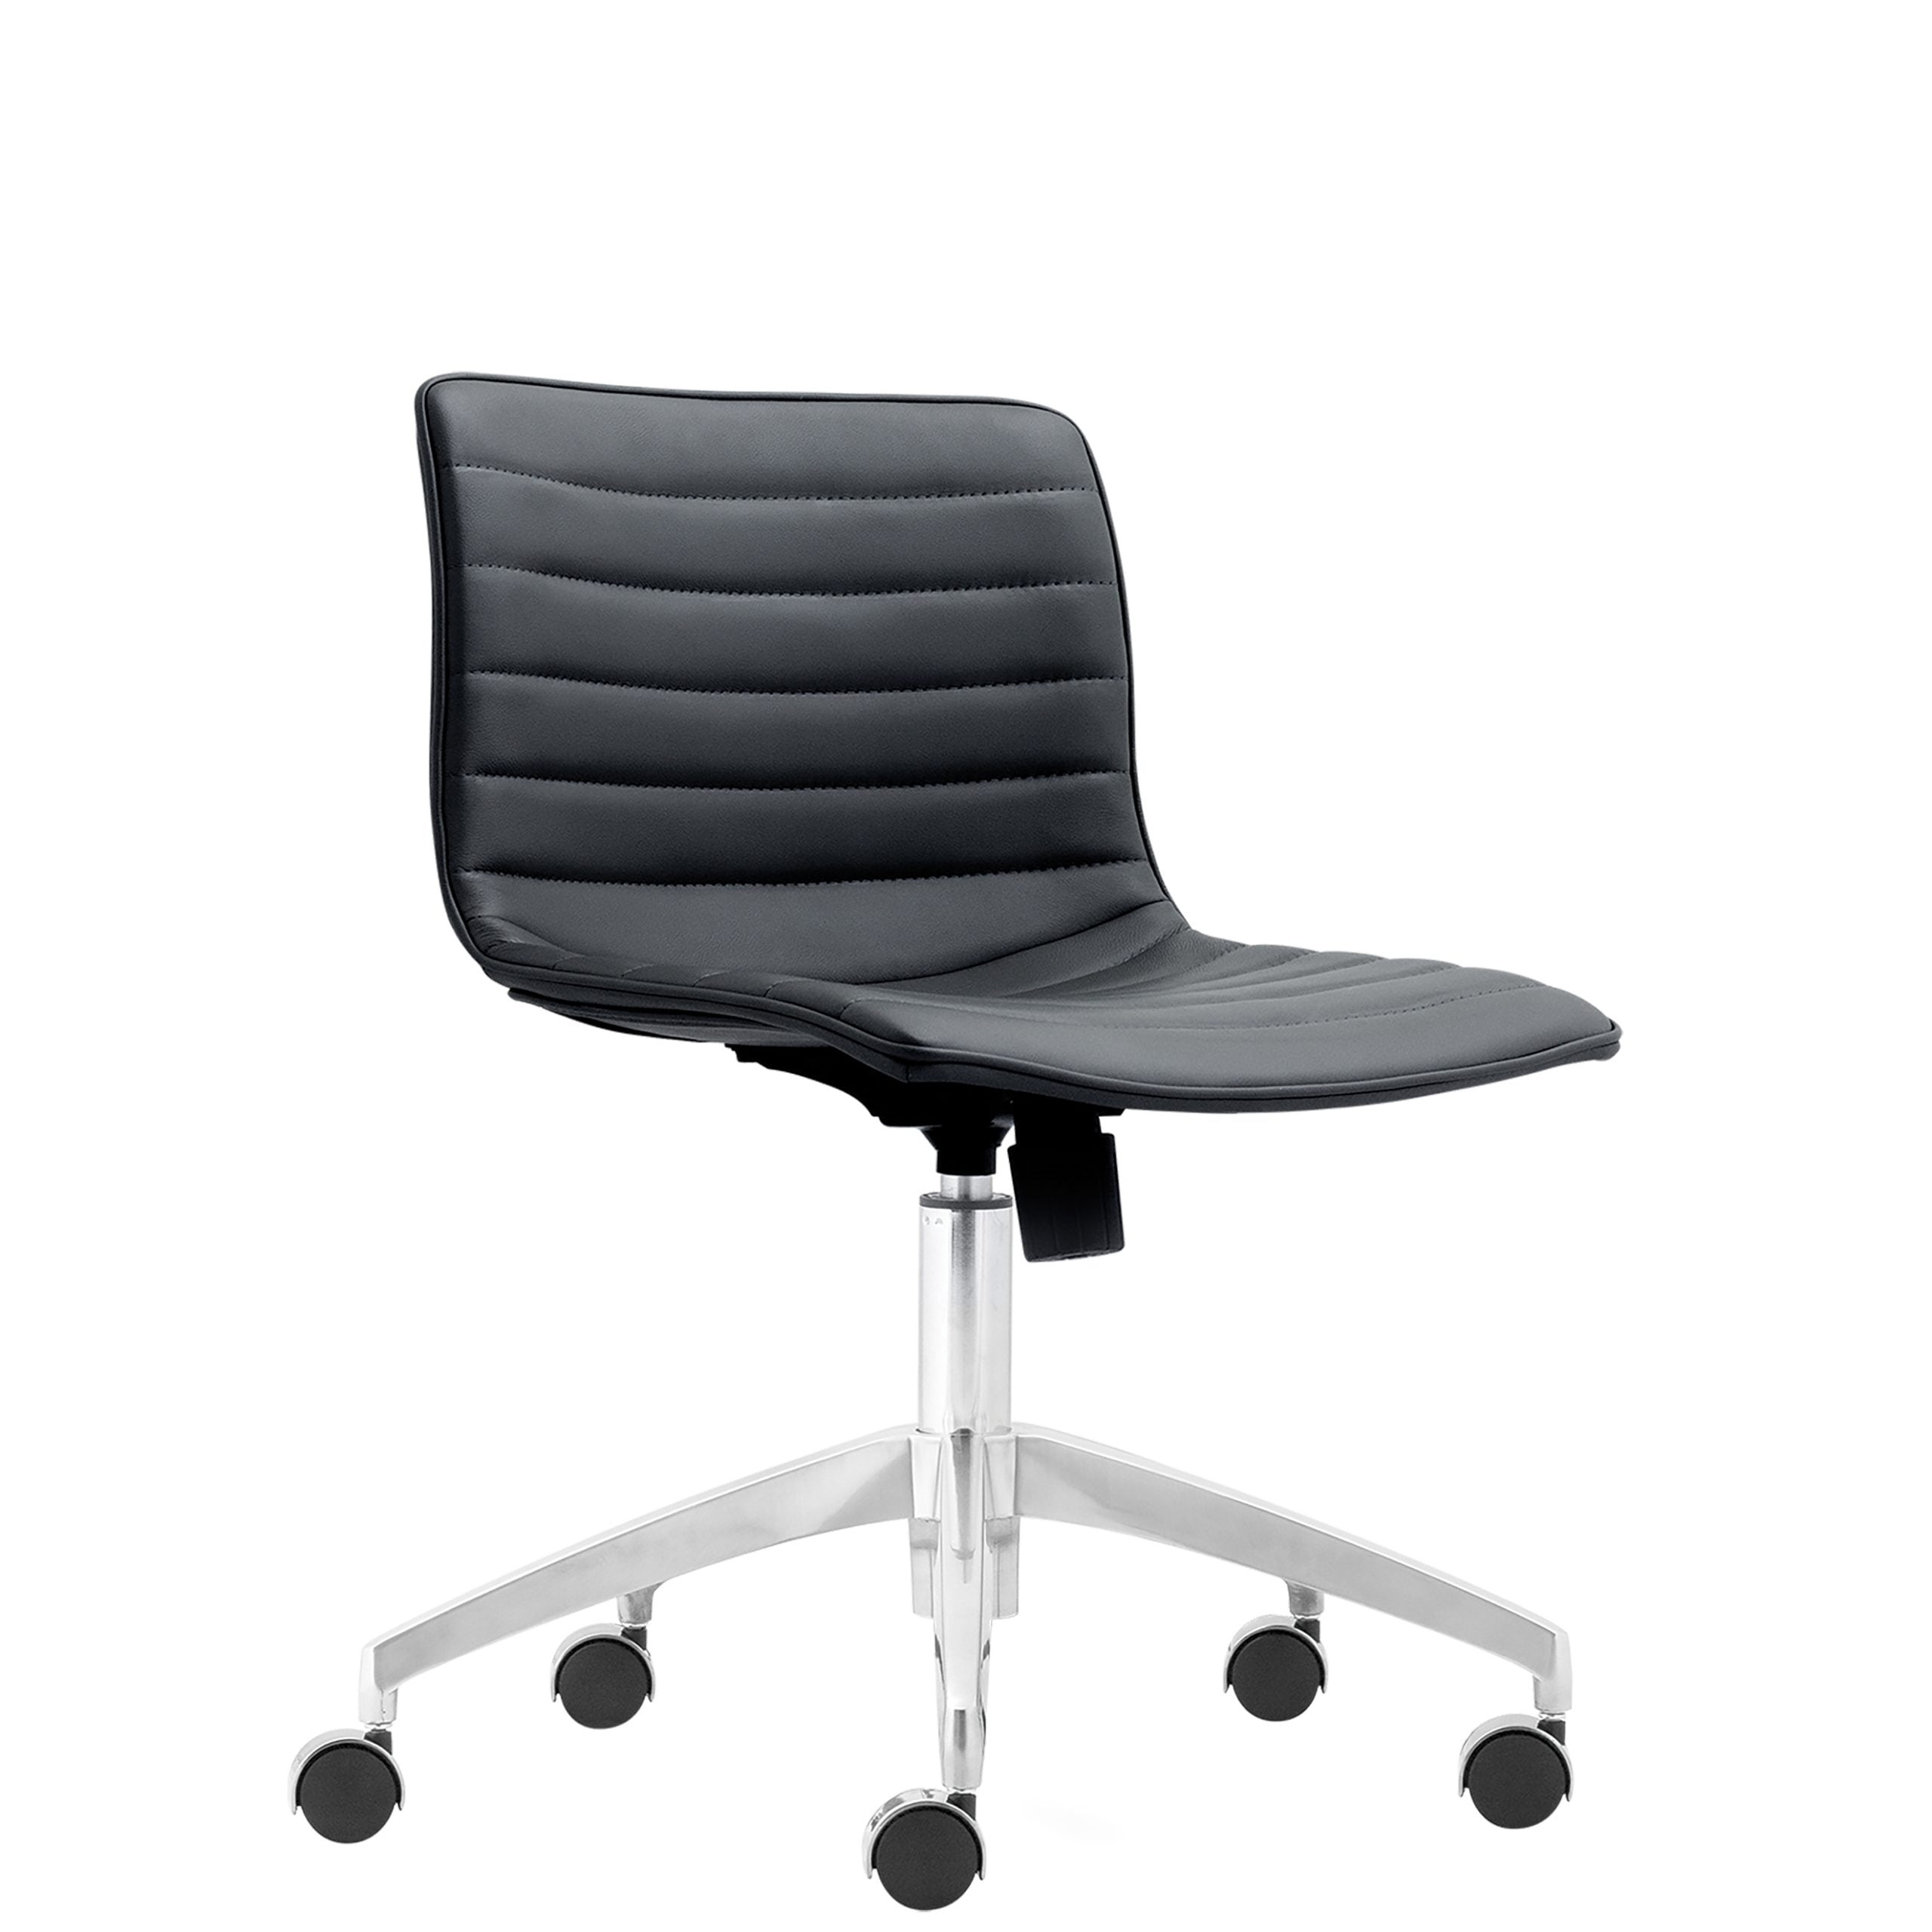 Siena Task Chair - Black